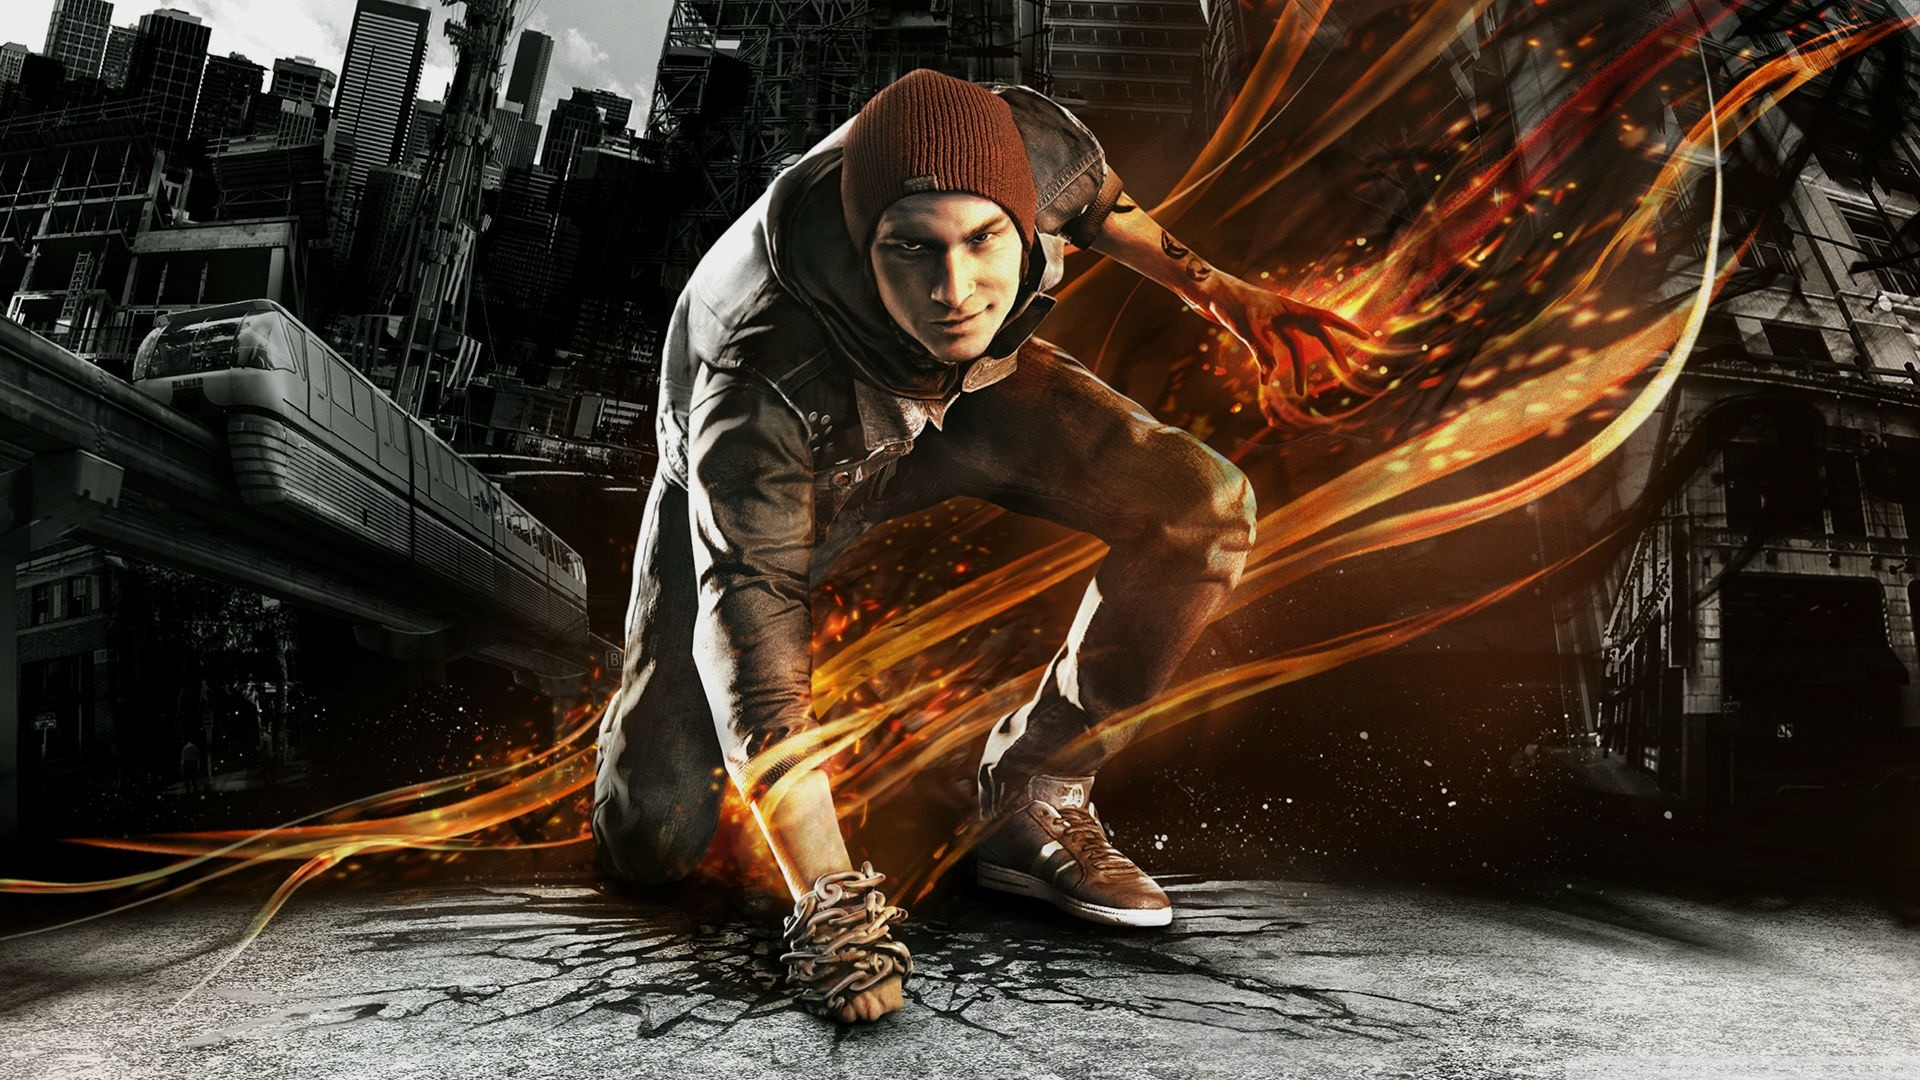 1920x1080 inFAMOUS: Second Son HD Wallpaper 13 - 1920 X 1080